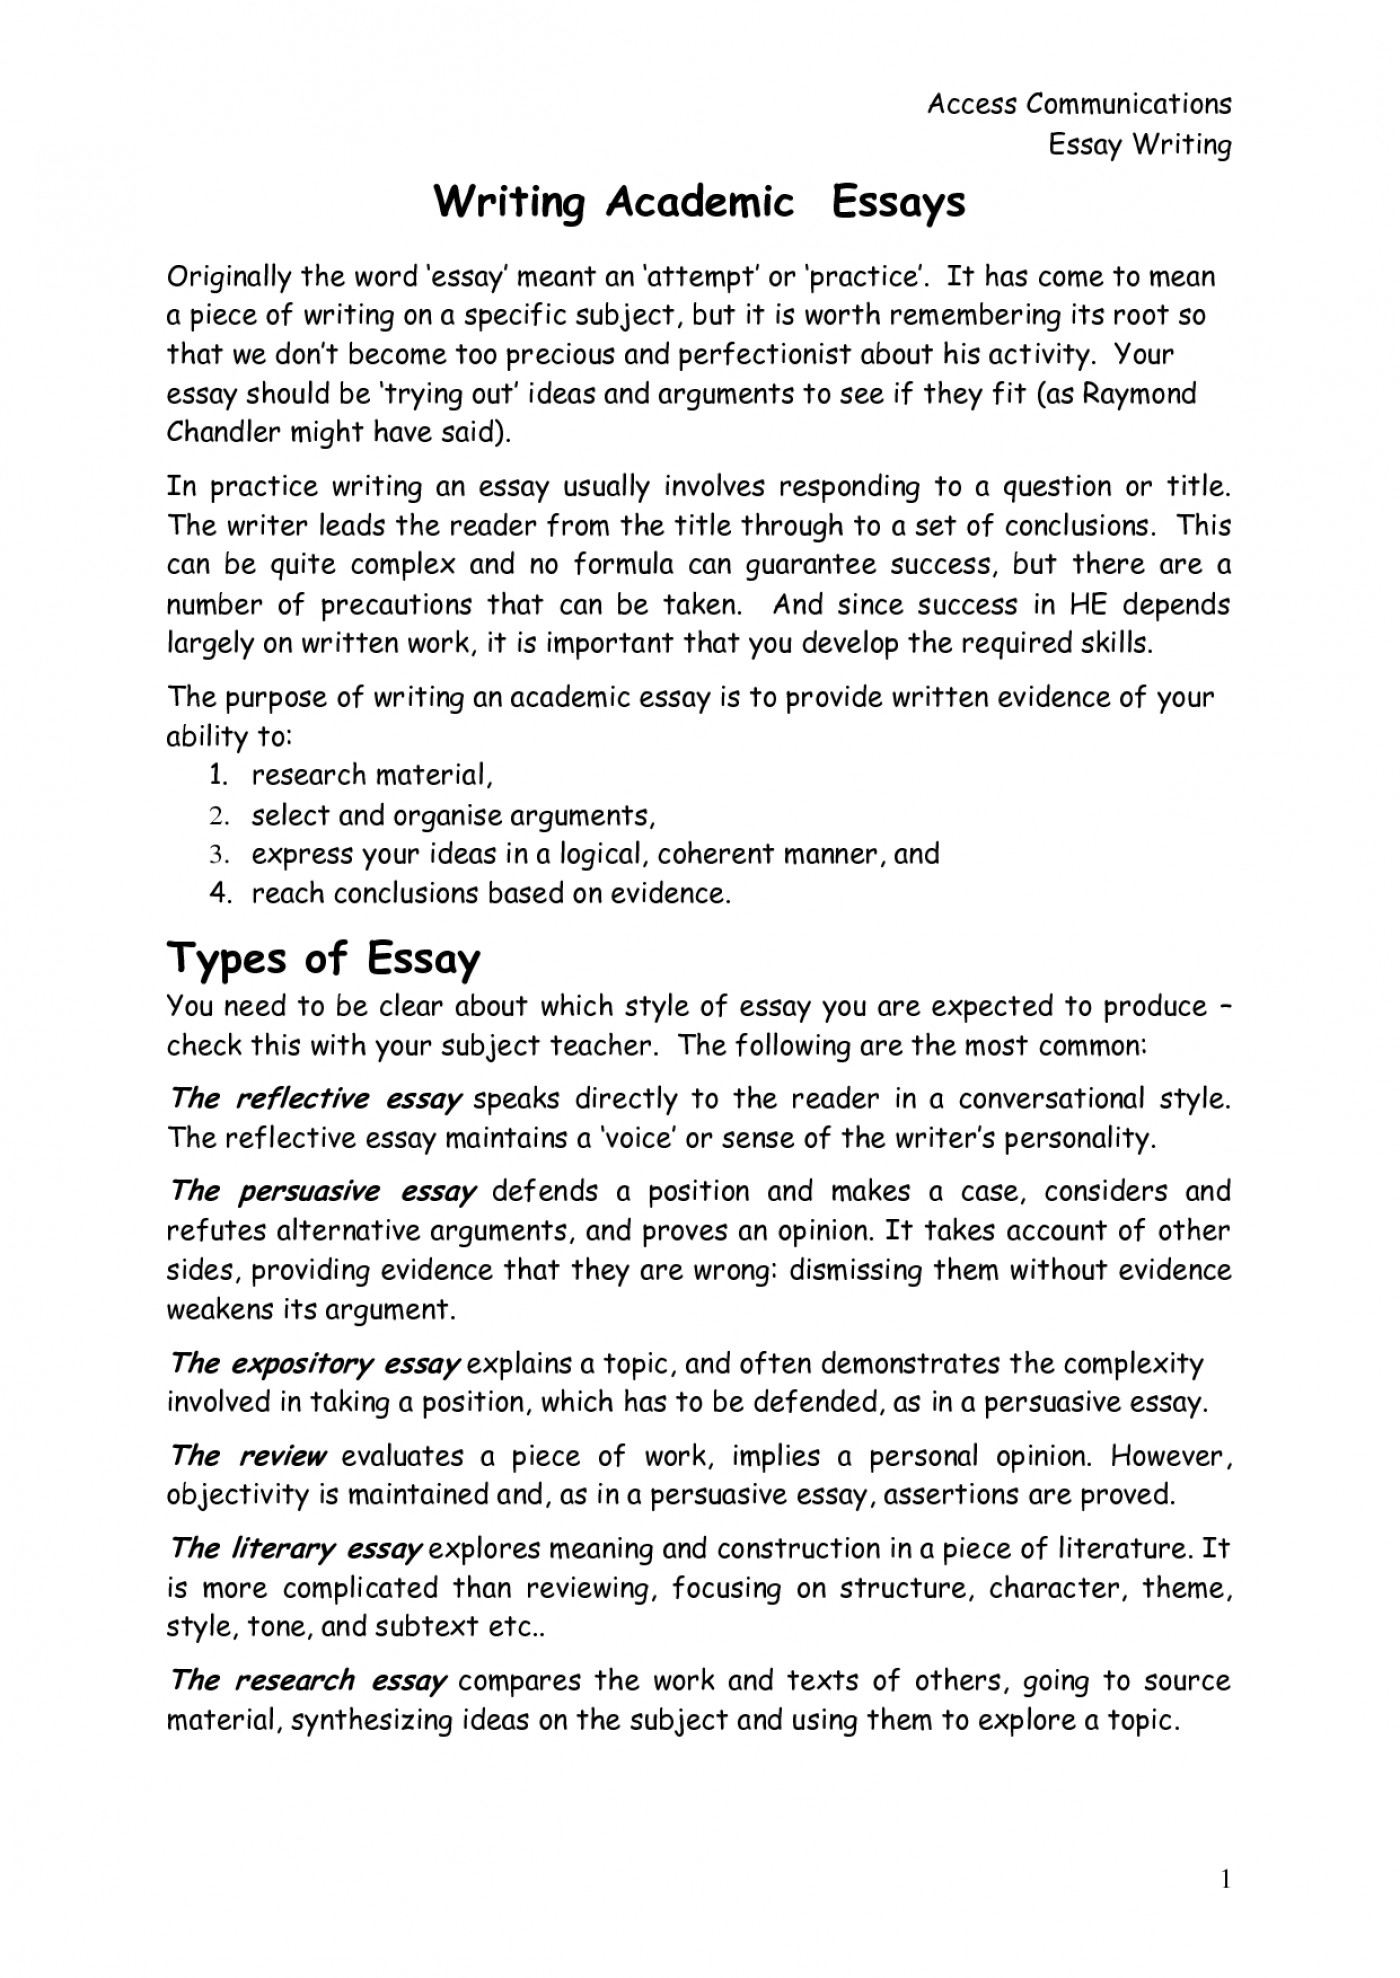 016 Reflective Essay On Academic Writings Beautiful Examples Sample Pdf About Writing English 101 1400